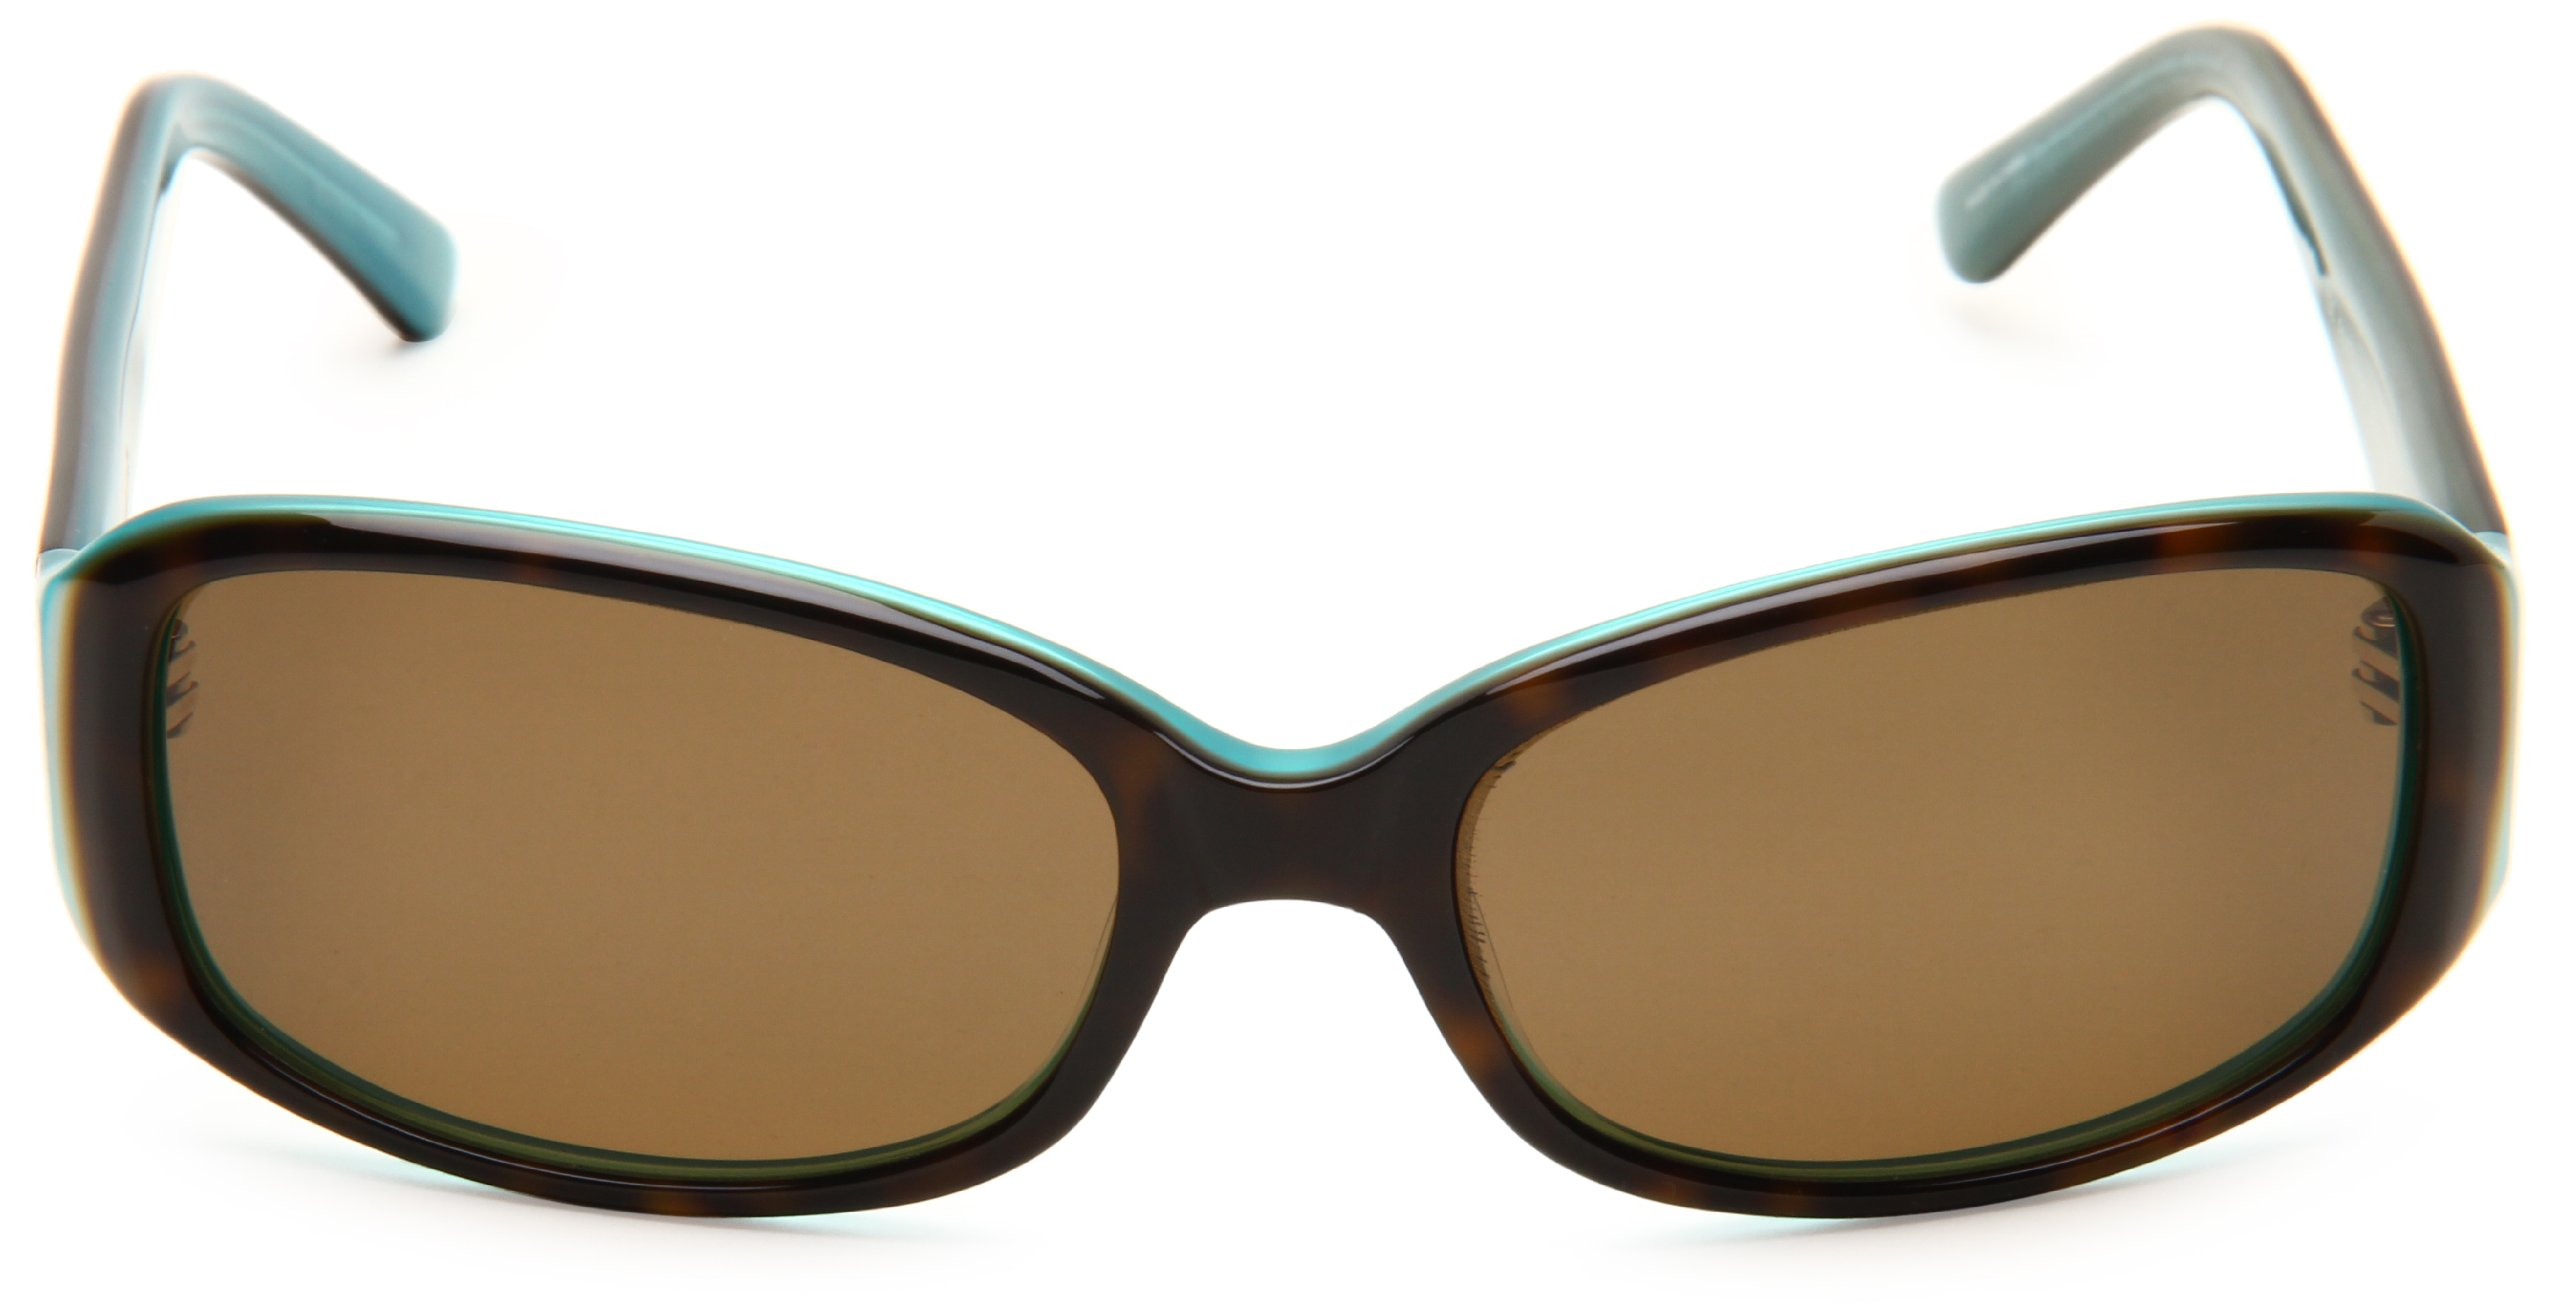 Kate Spade Women's Paxton/S Rectangular Sunglasses,Aqua Tortoise Frame/Brown Polarized Lens,one size by Kate Spade New York (Image #2)